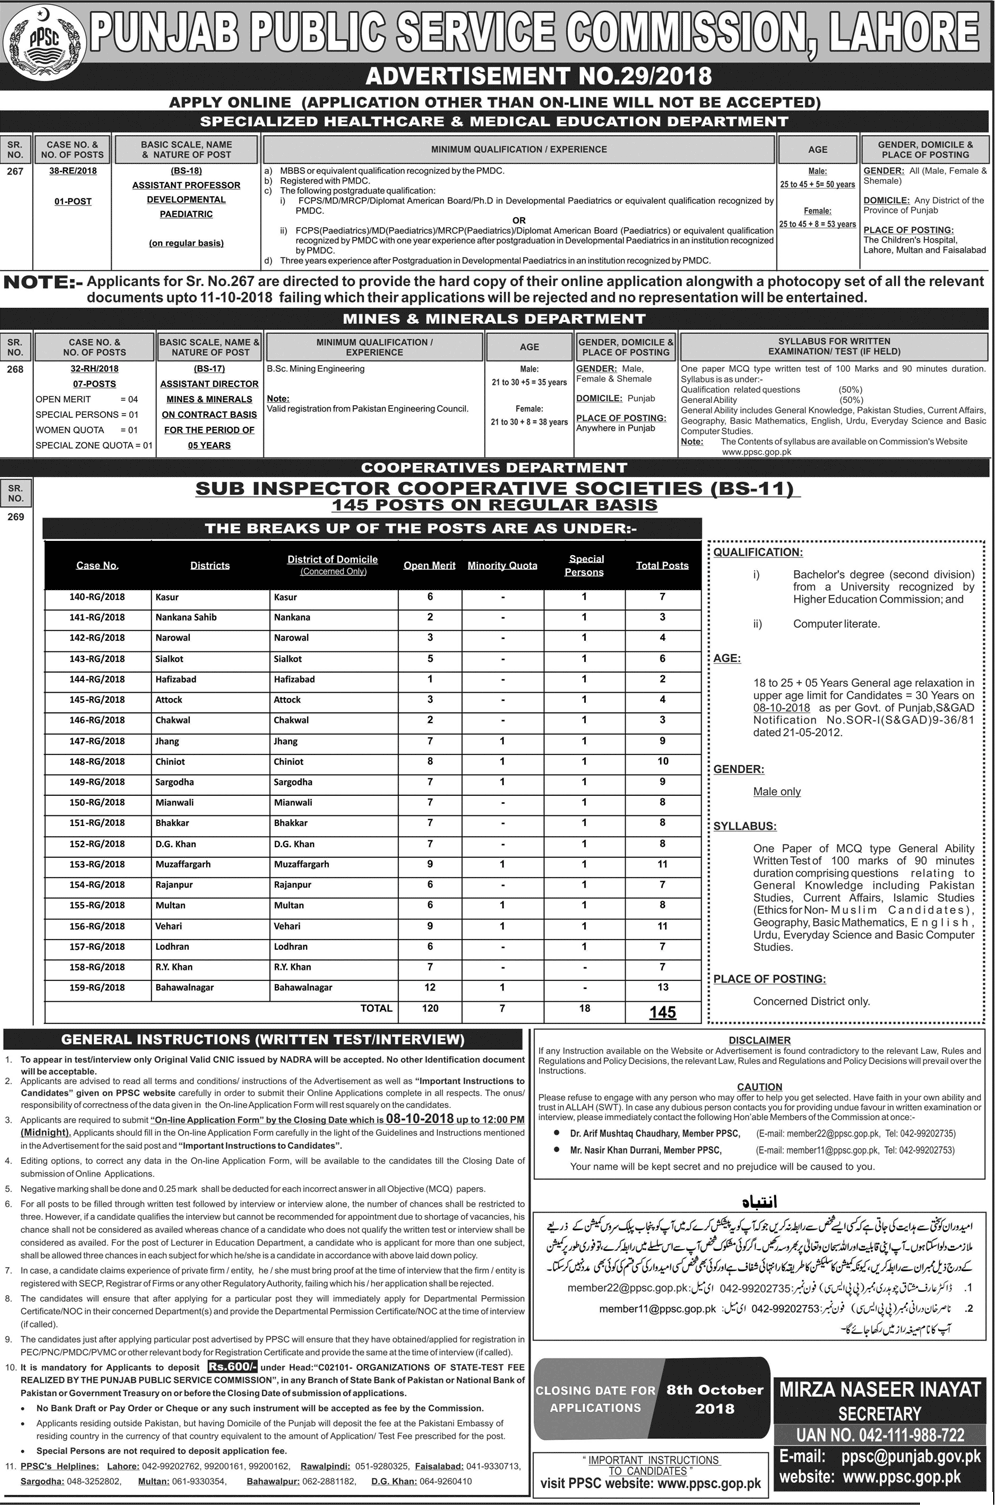 PPSC Jobs Advertisement No 29/2018 Sub Inspector Application Form Download